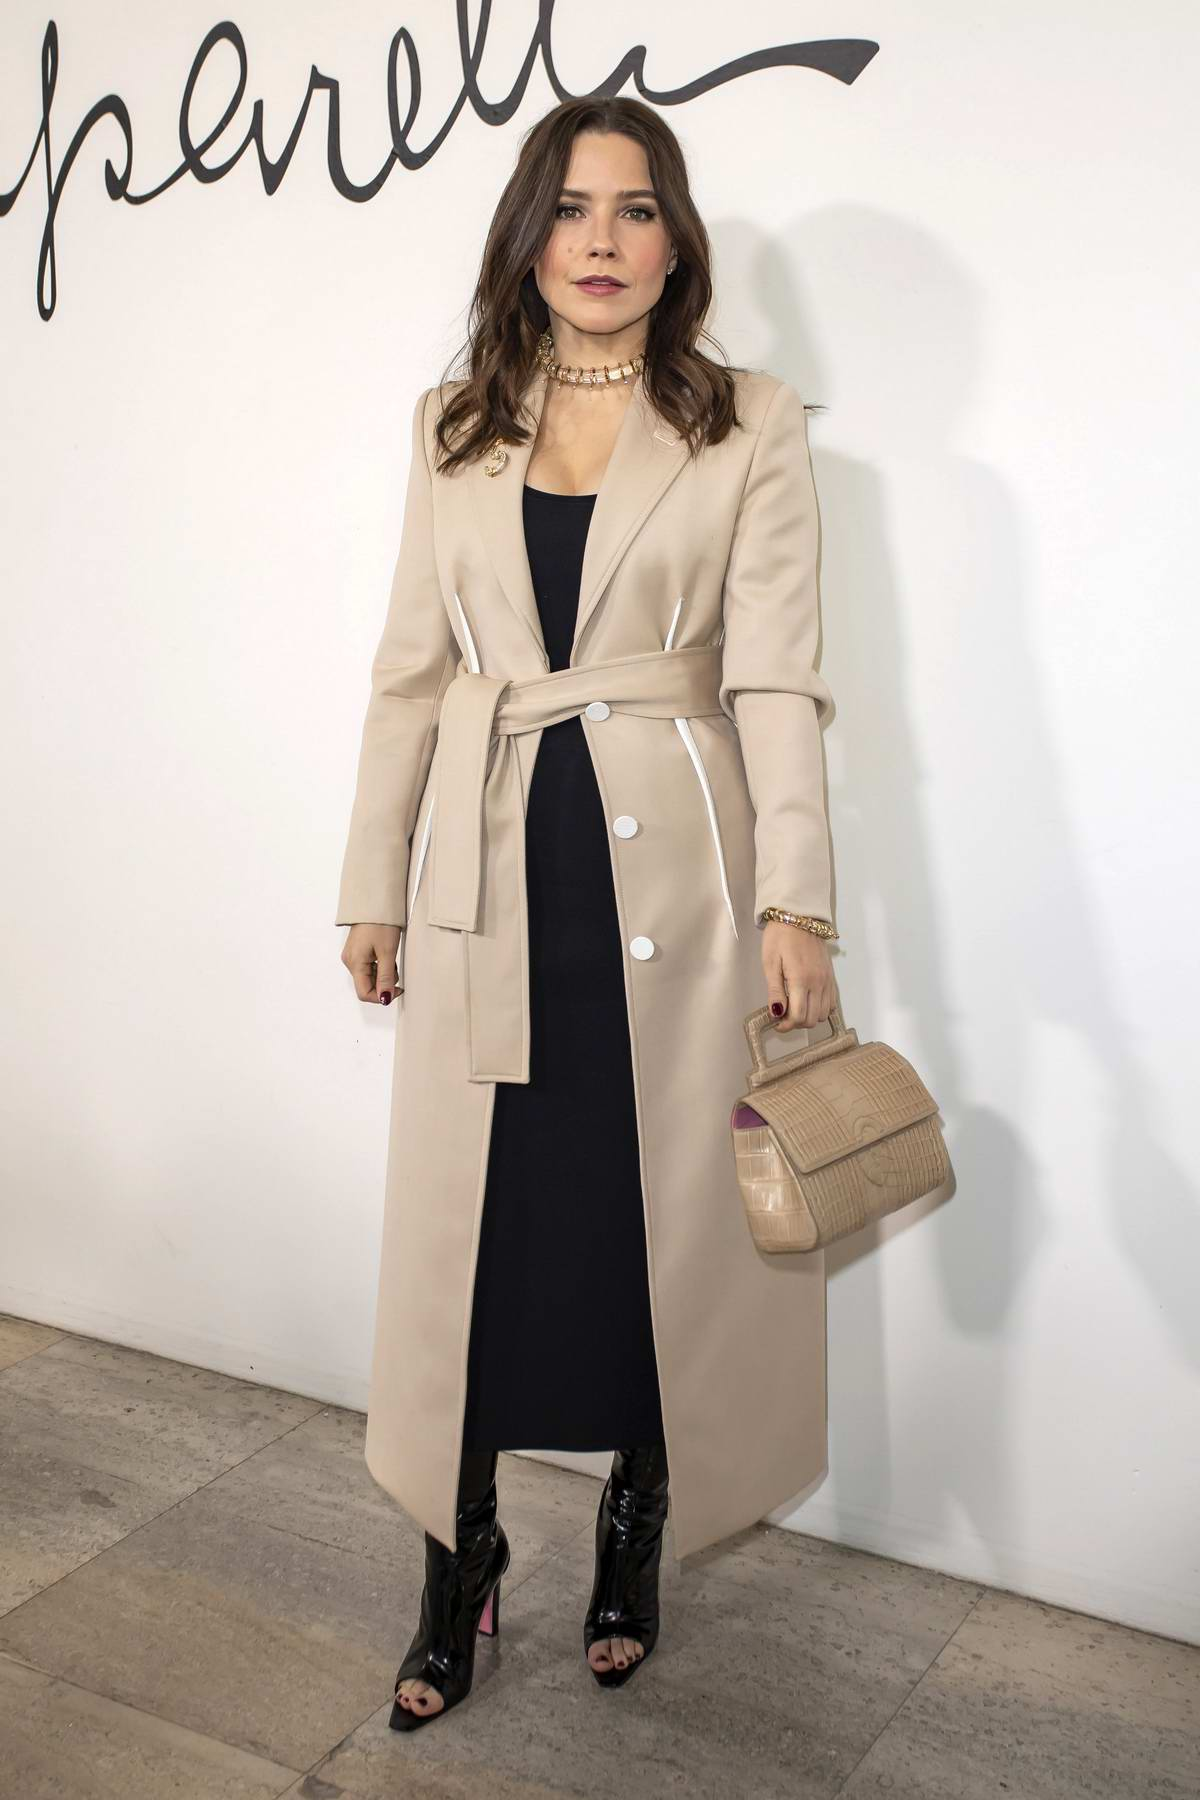 Sophia Bush attends the Schiaparelli Haute Couture Spring/Summer 2020 show in Paris, France